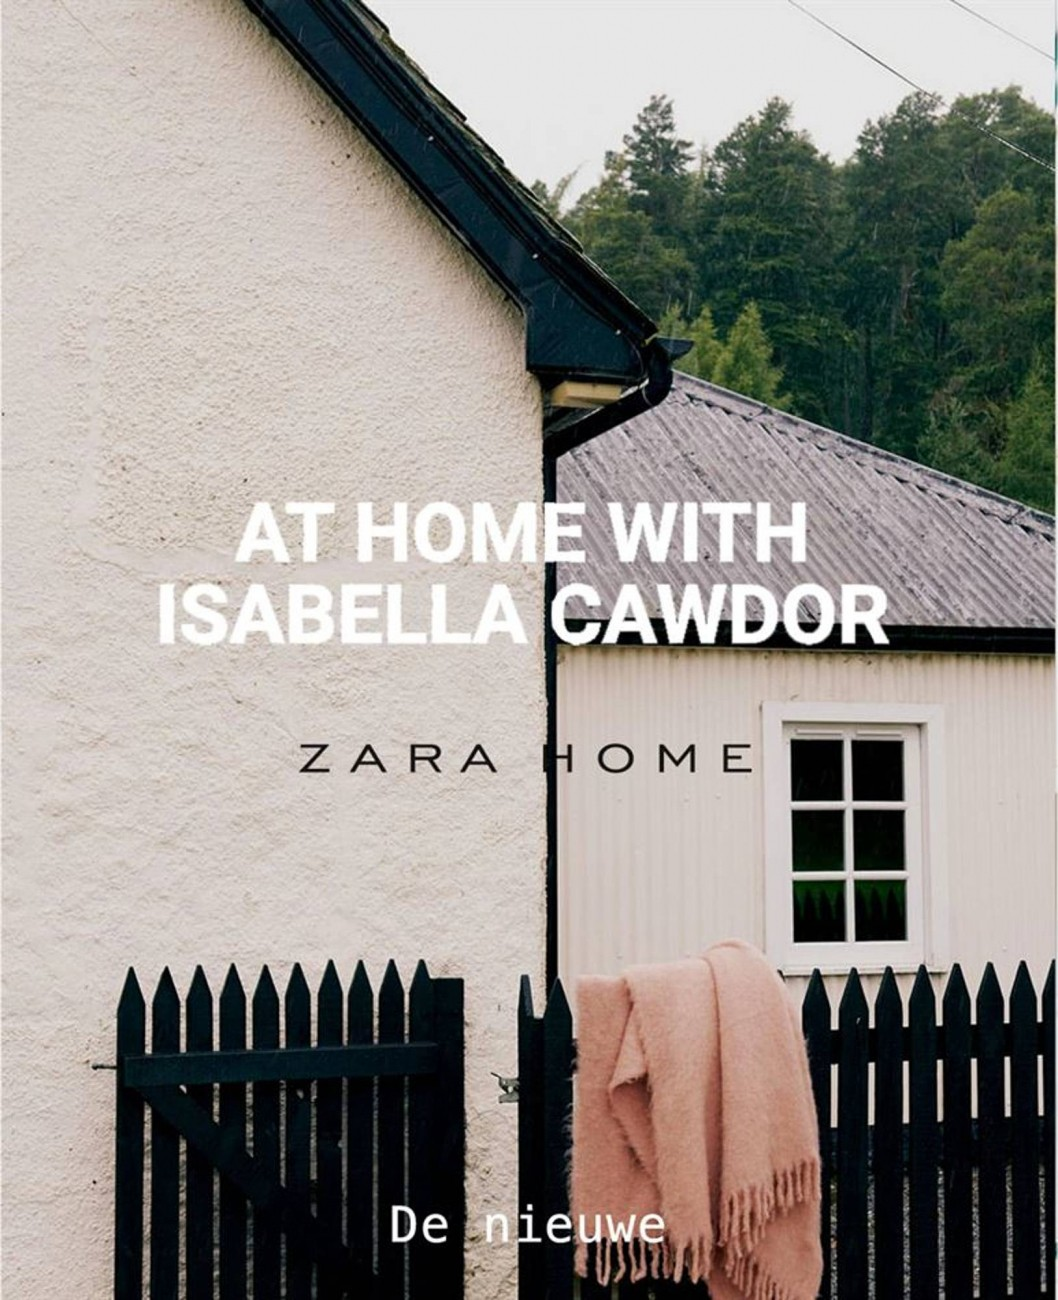 Zara Home Folder 23.09.2020 - 23.11.2020 - at home with Isabela Cawdor